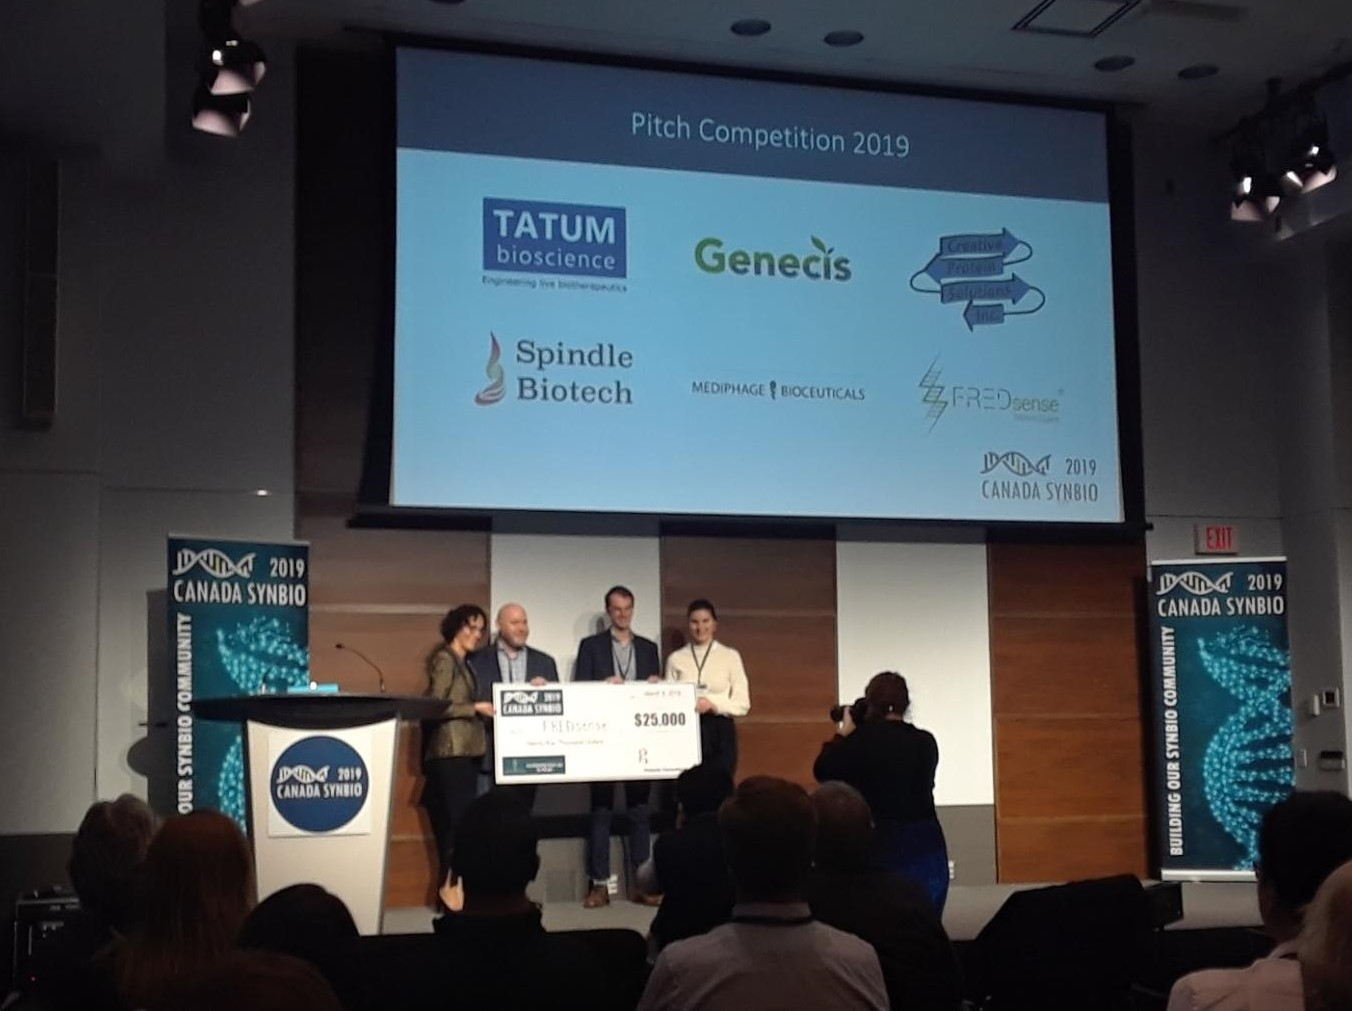 FREDsense won first place in the pitch competition, with a cash prize of $25000 and $5000 worth of supplies from IDT.  (Photo by Nathan Braniff)